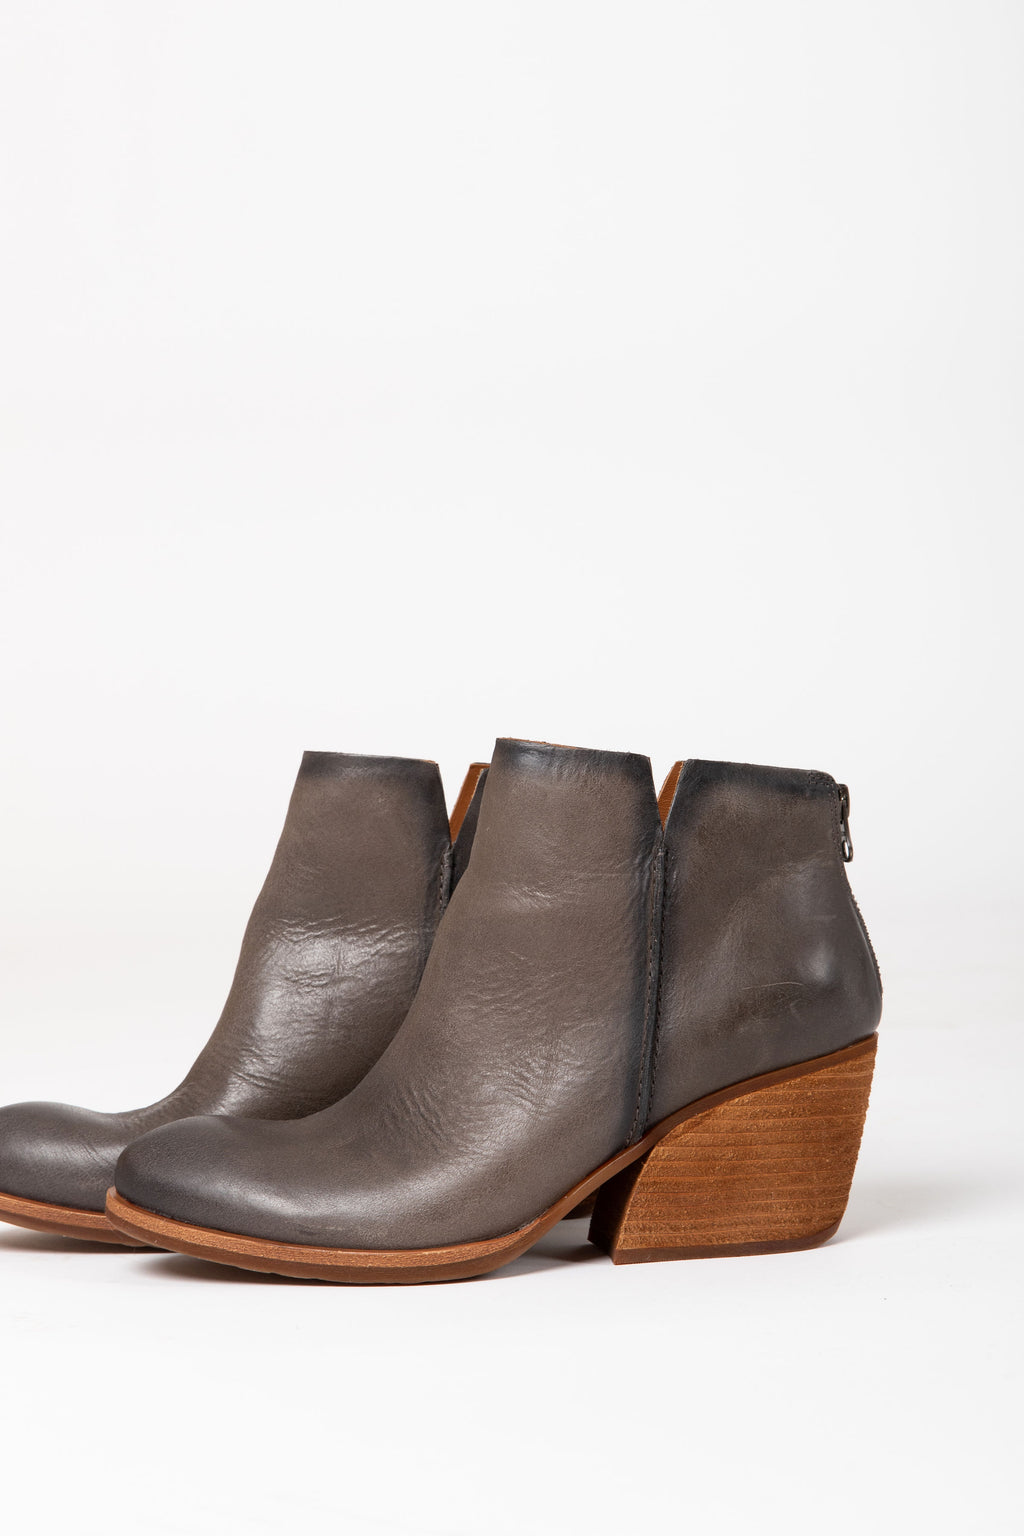 Kork-Ease: Chandra Boot in Grey